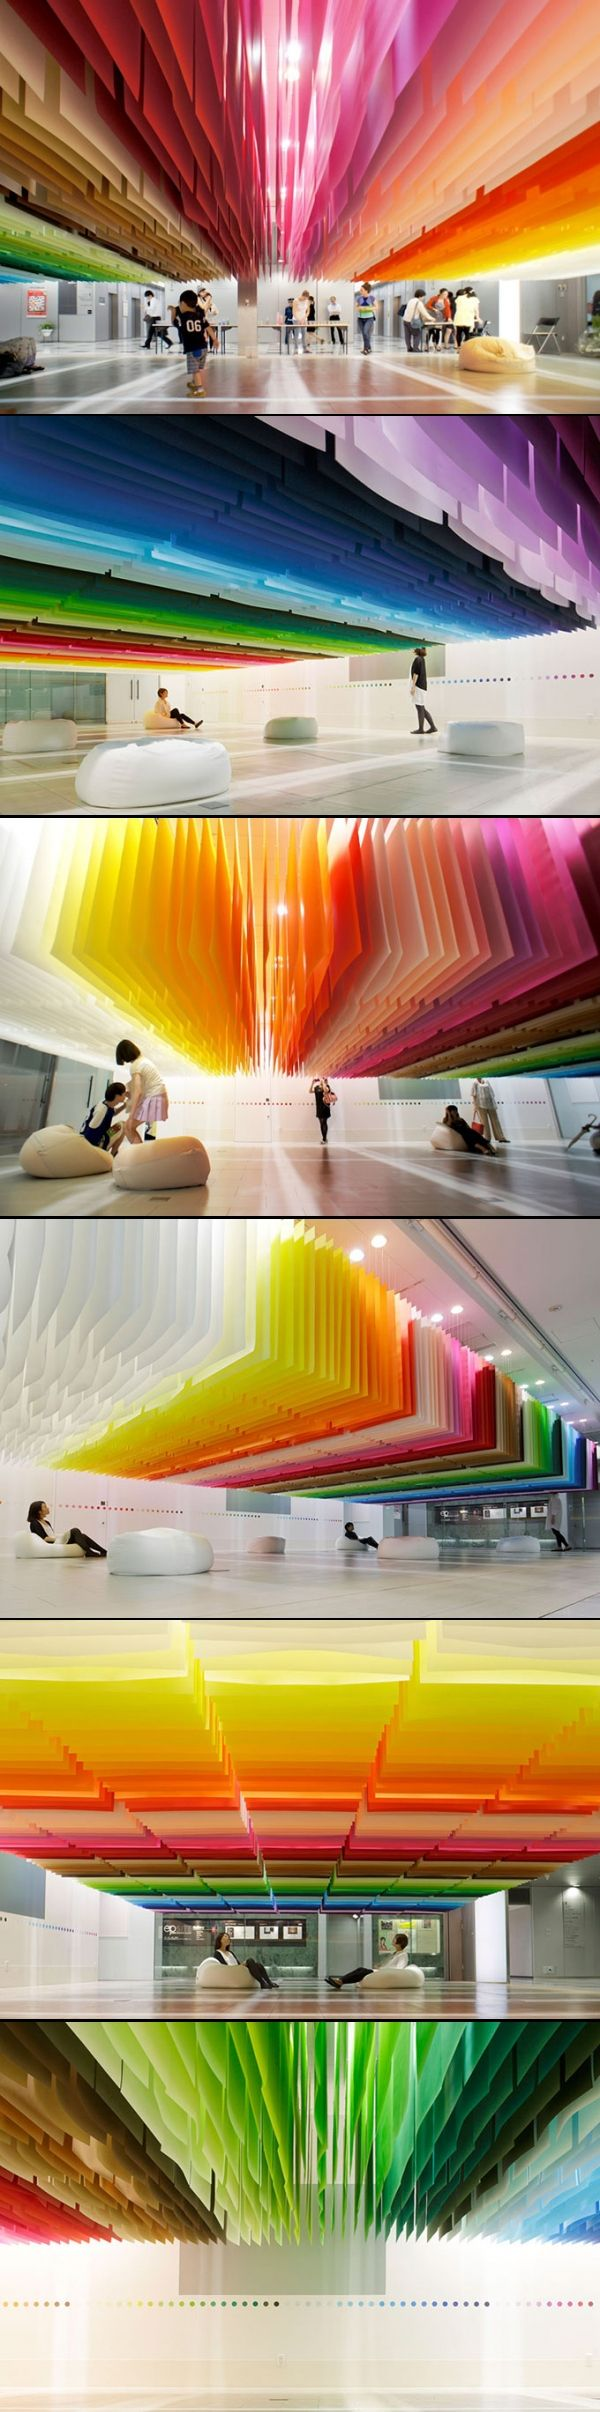 100 Colors Exhibition - Japan #colors #exhibit